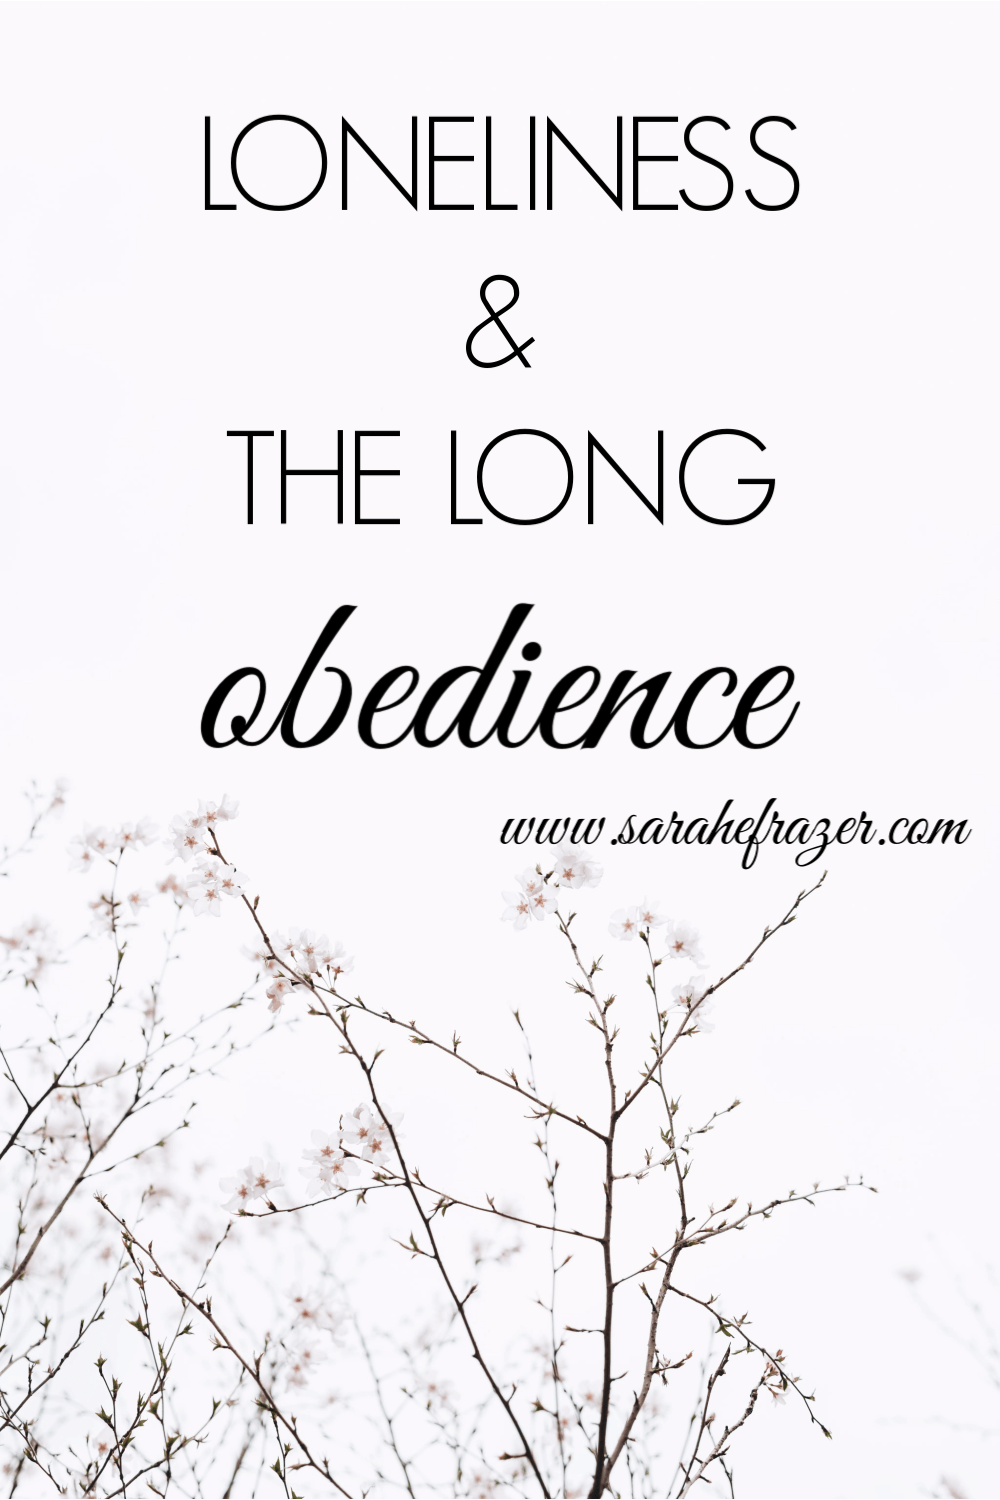 Loneliness & The Long Obedience